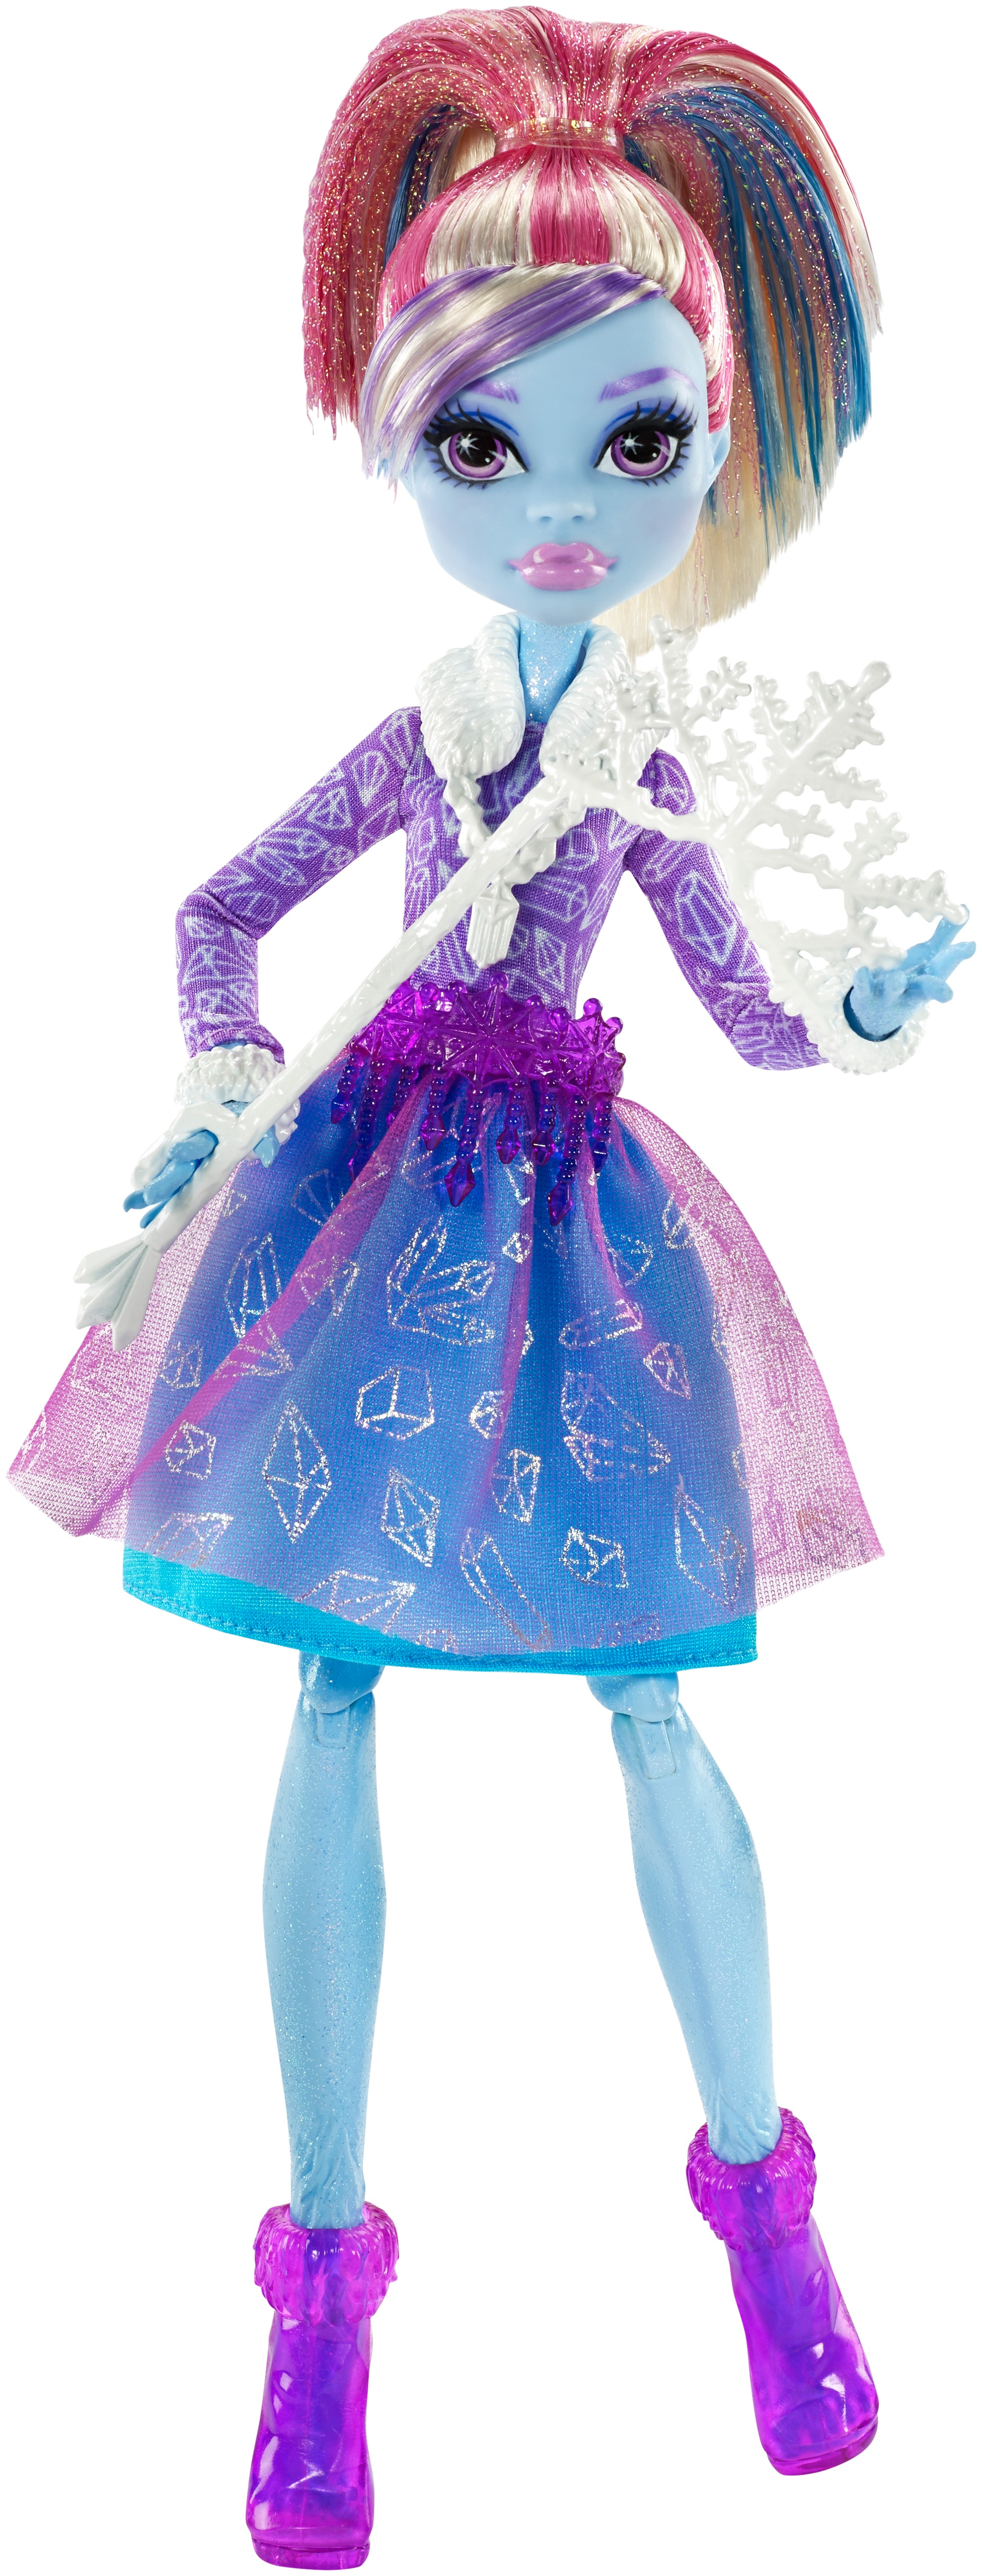 Monster High Welcome To Monster High Monster Dance Party Abbey Bominable Doll by MATTEL INC.